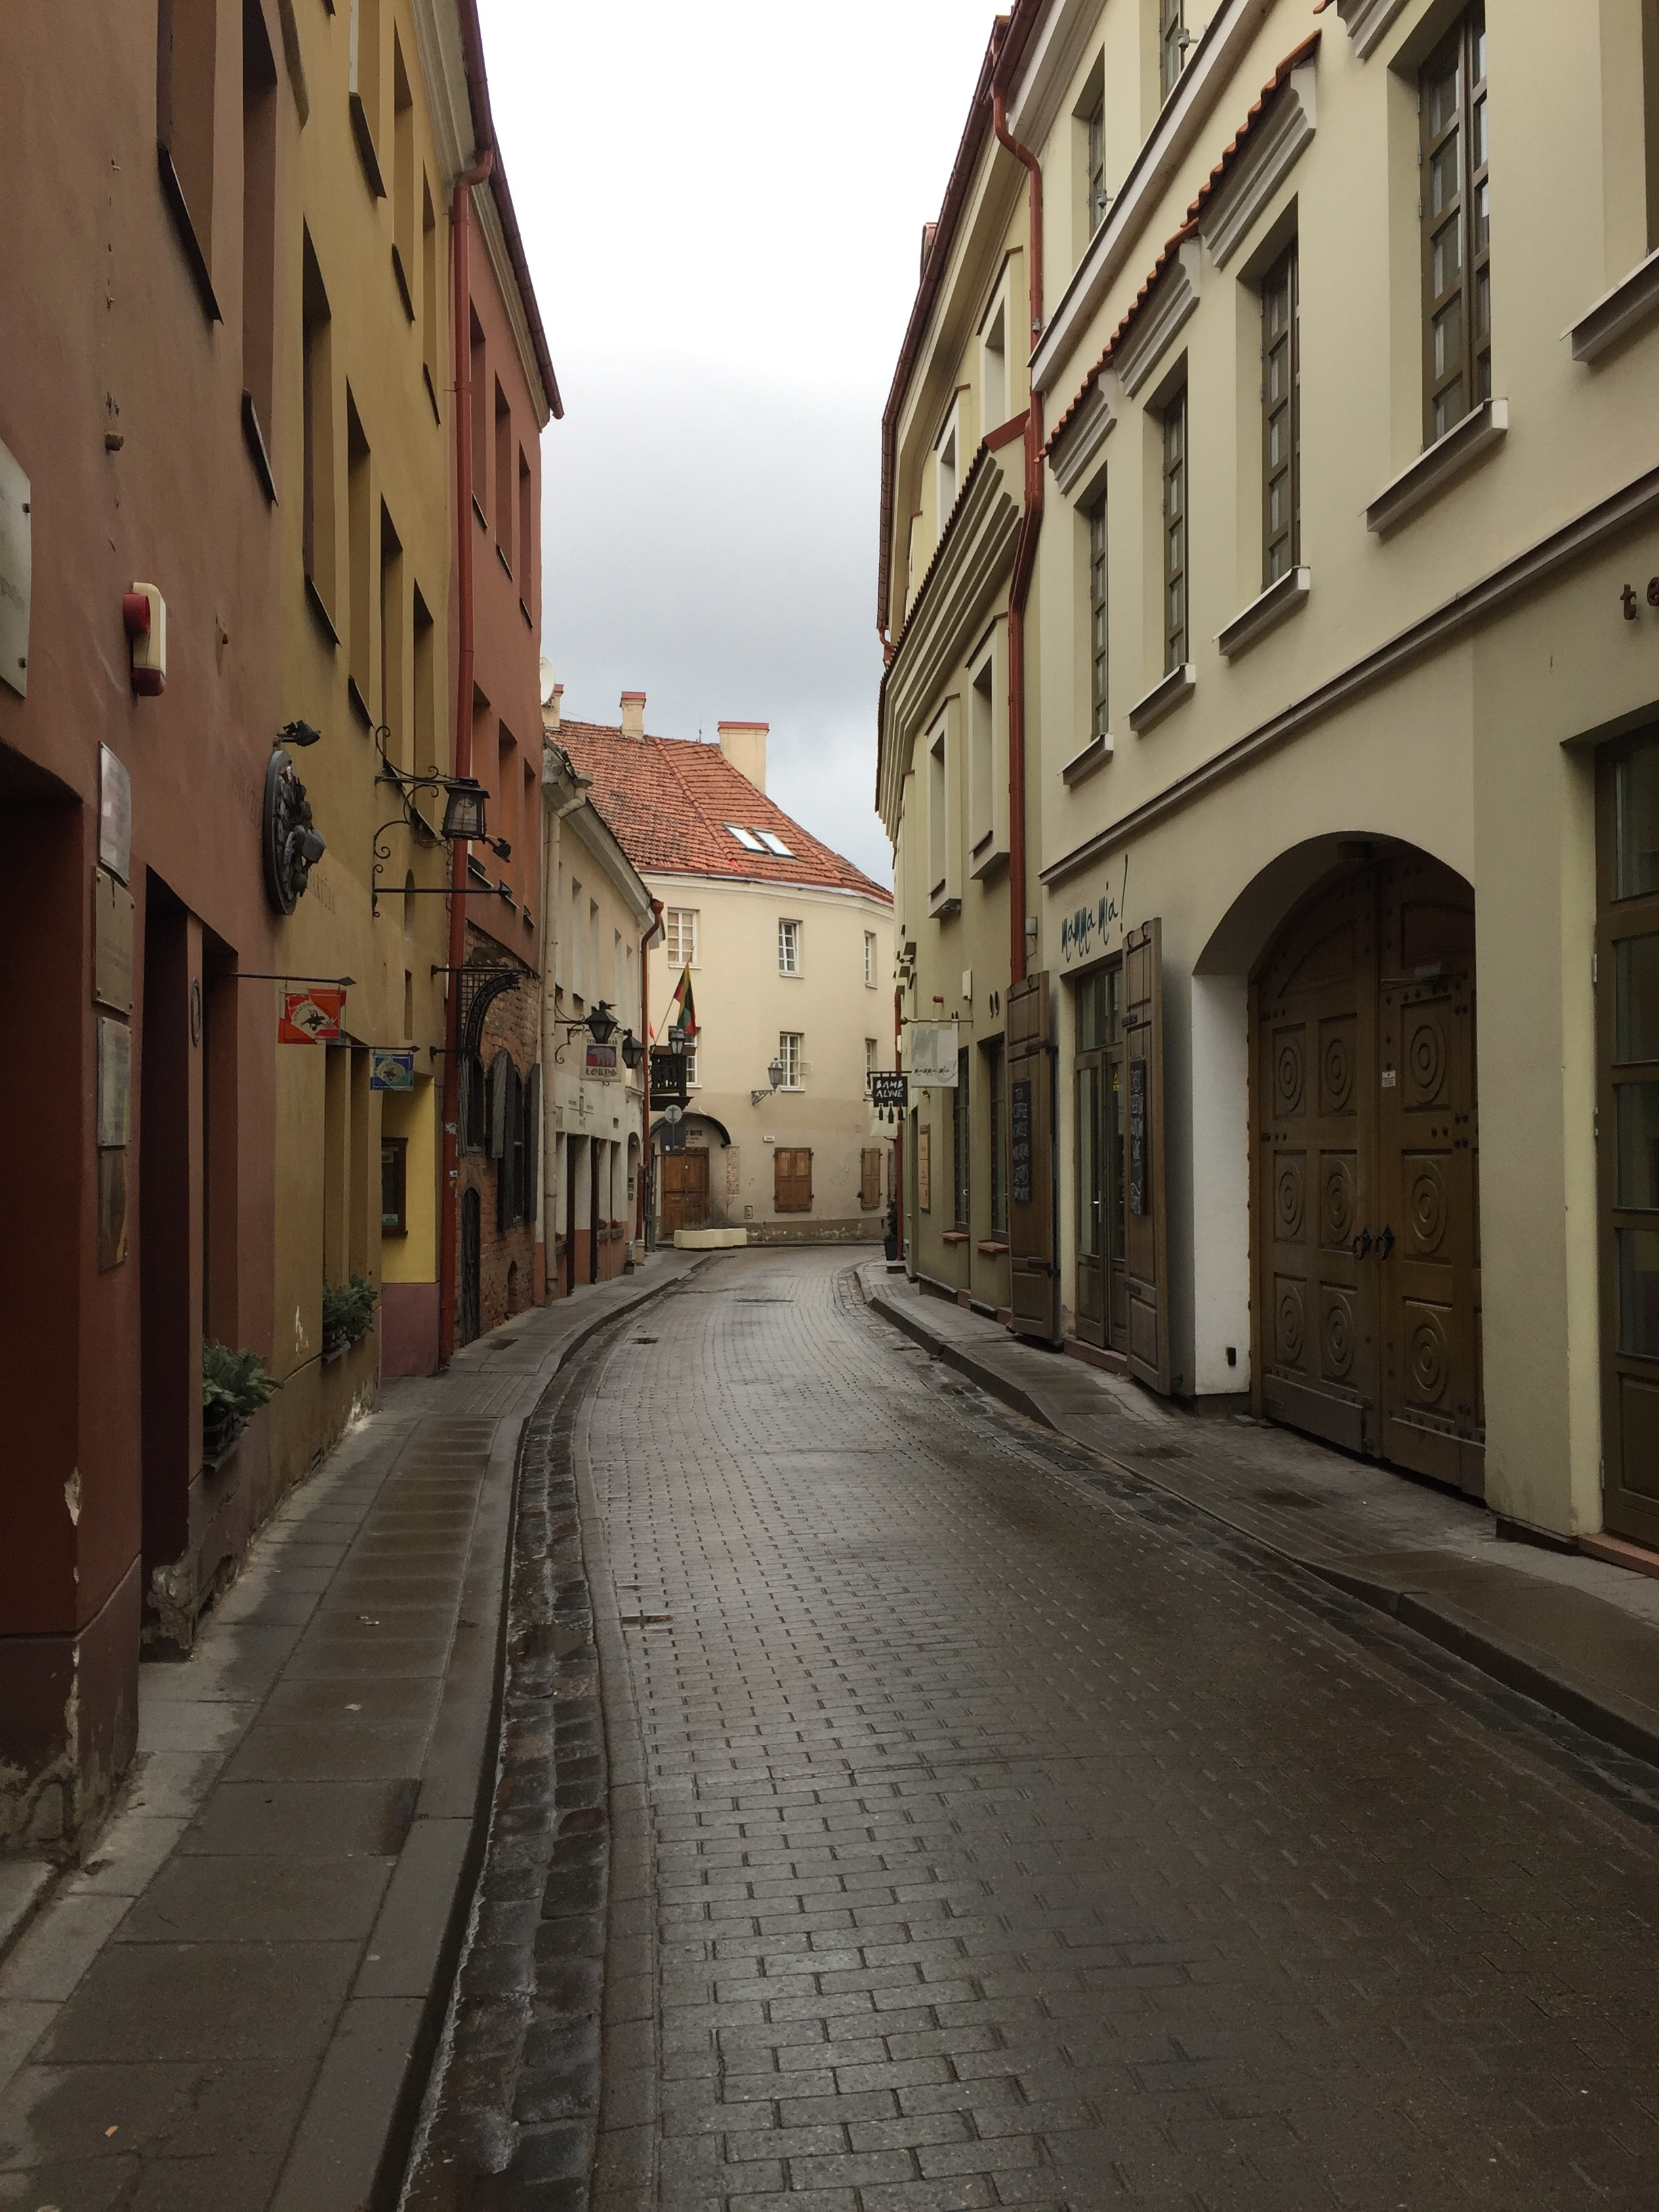 A quiet street in the old town of Vilnuis